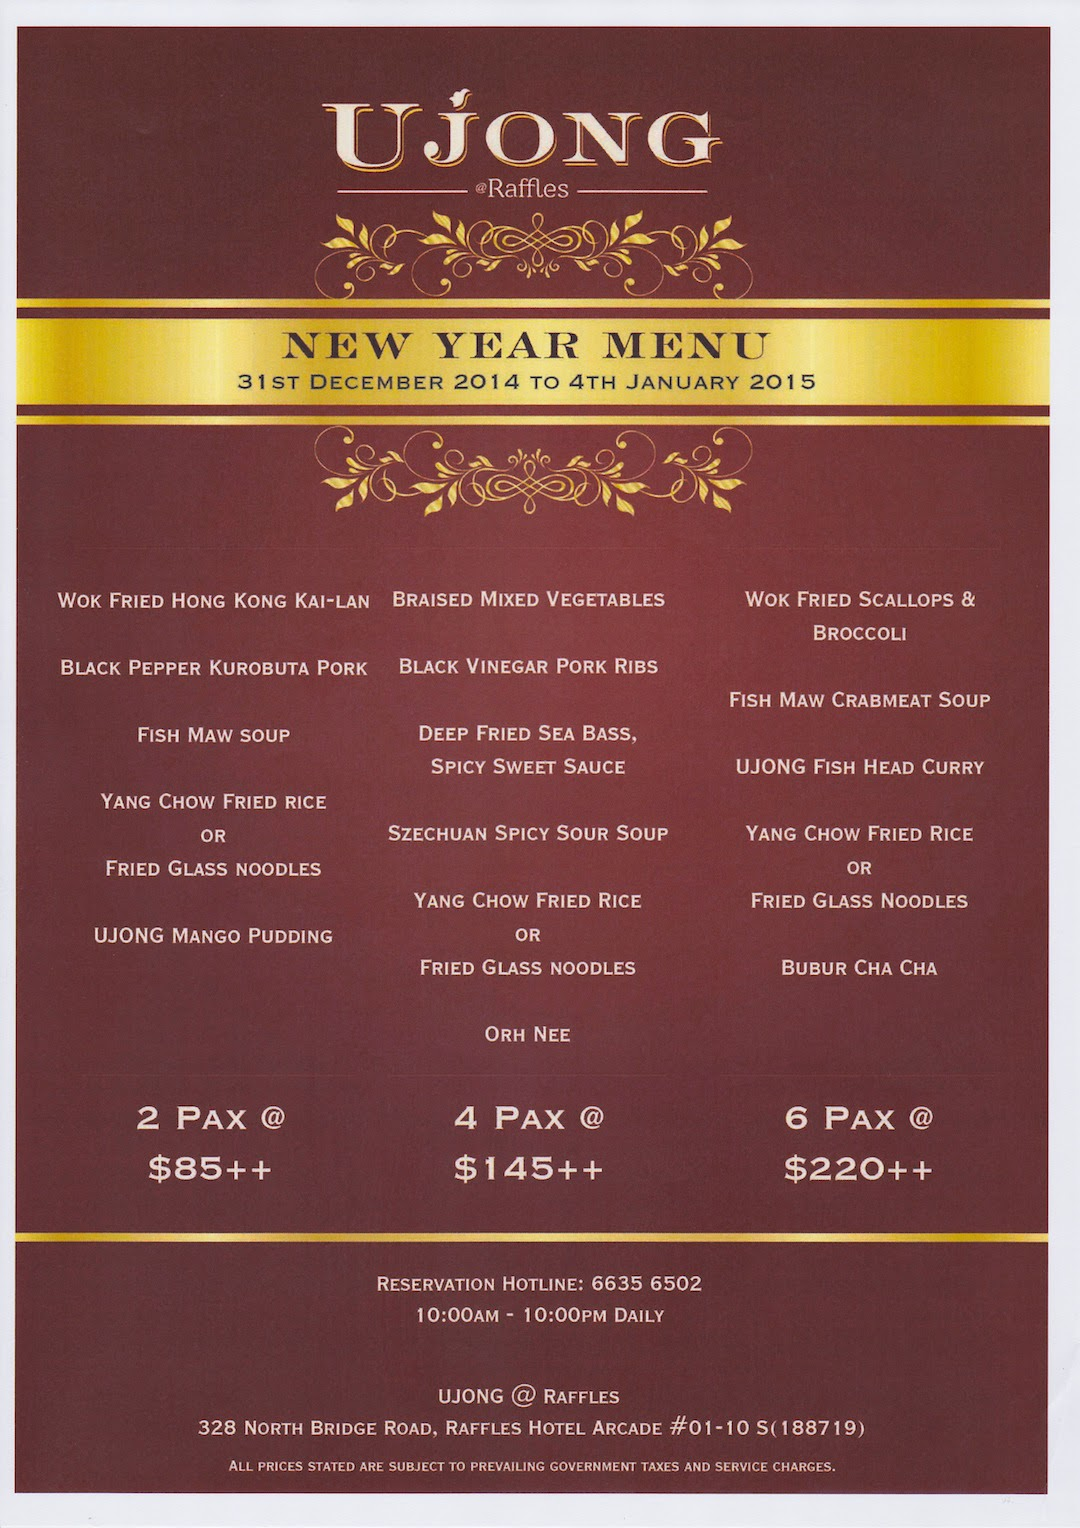 New Year Menu